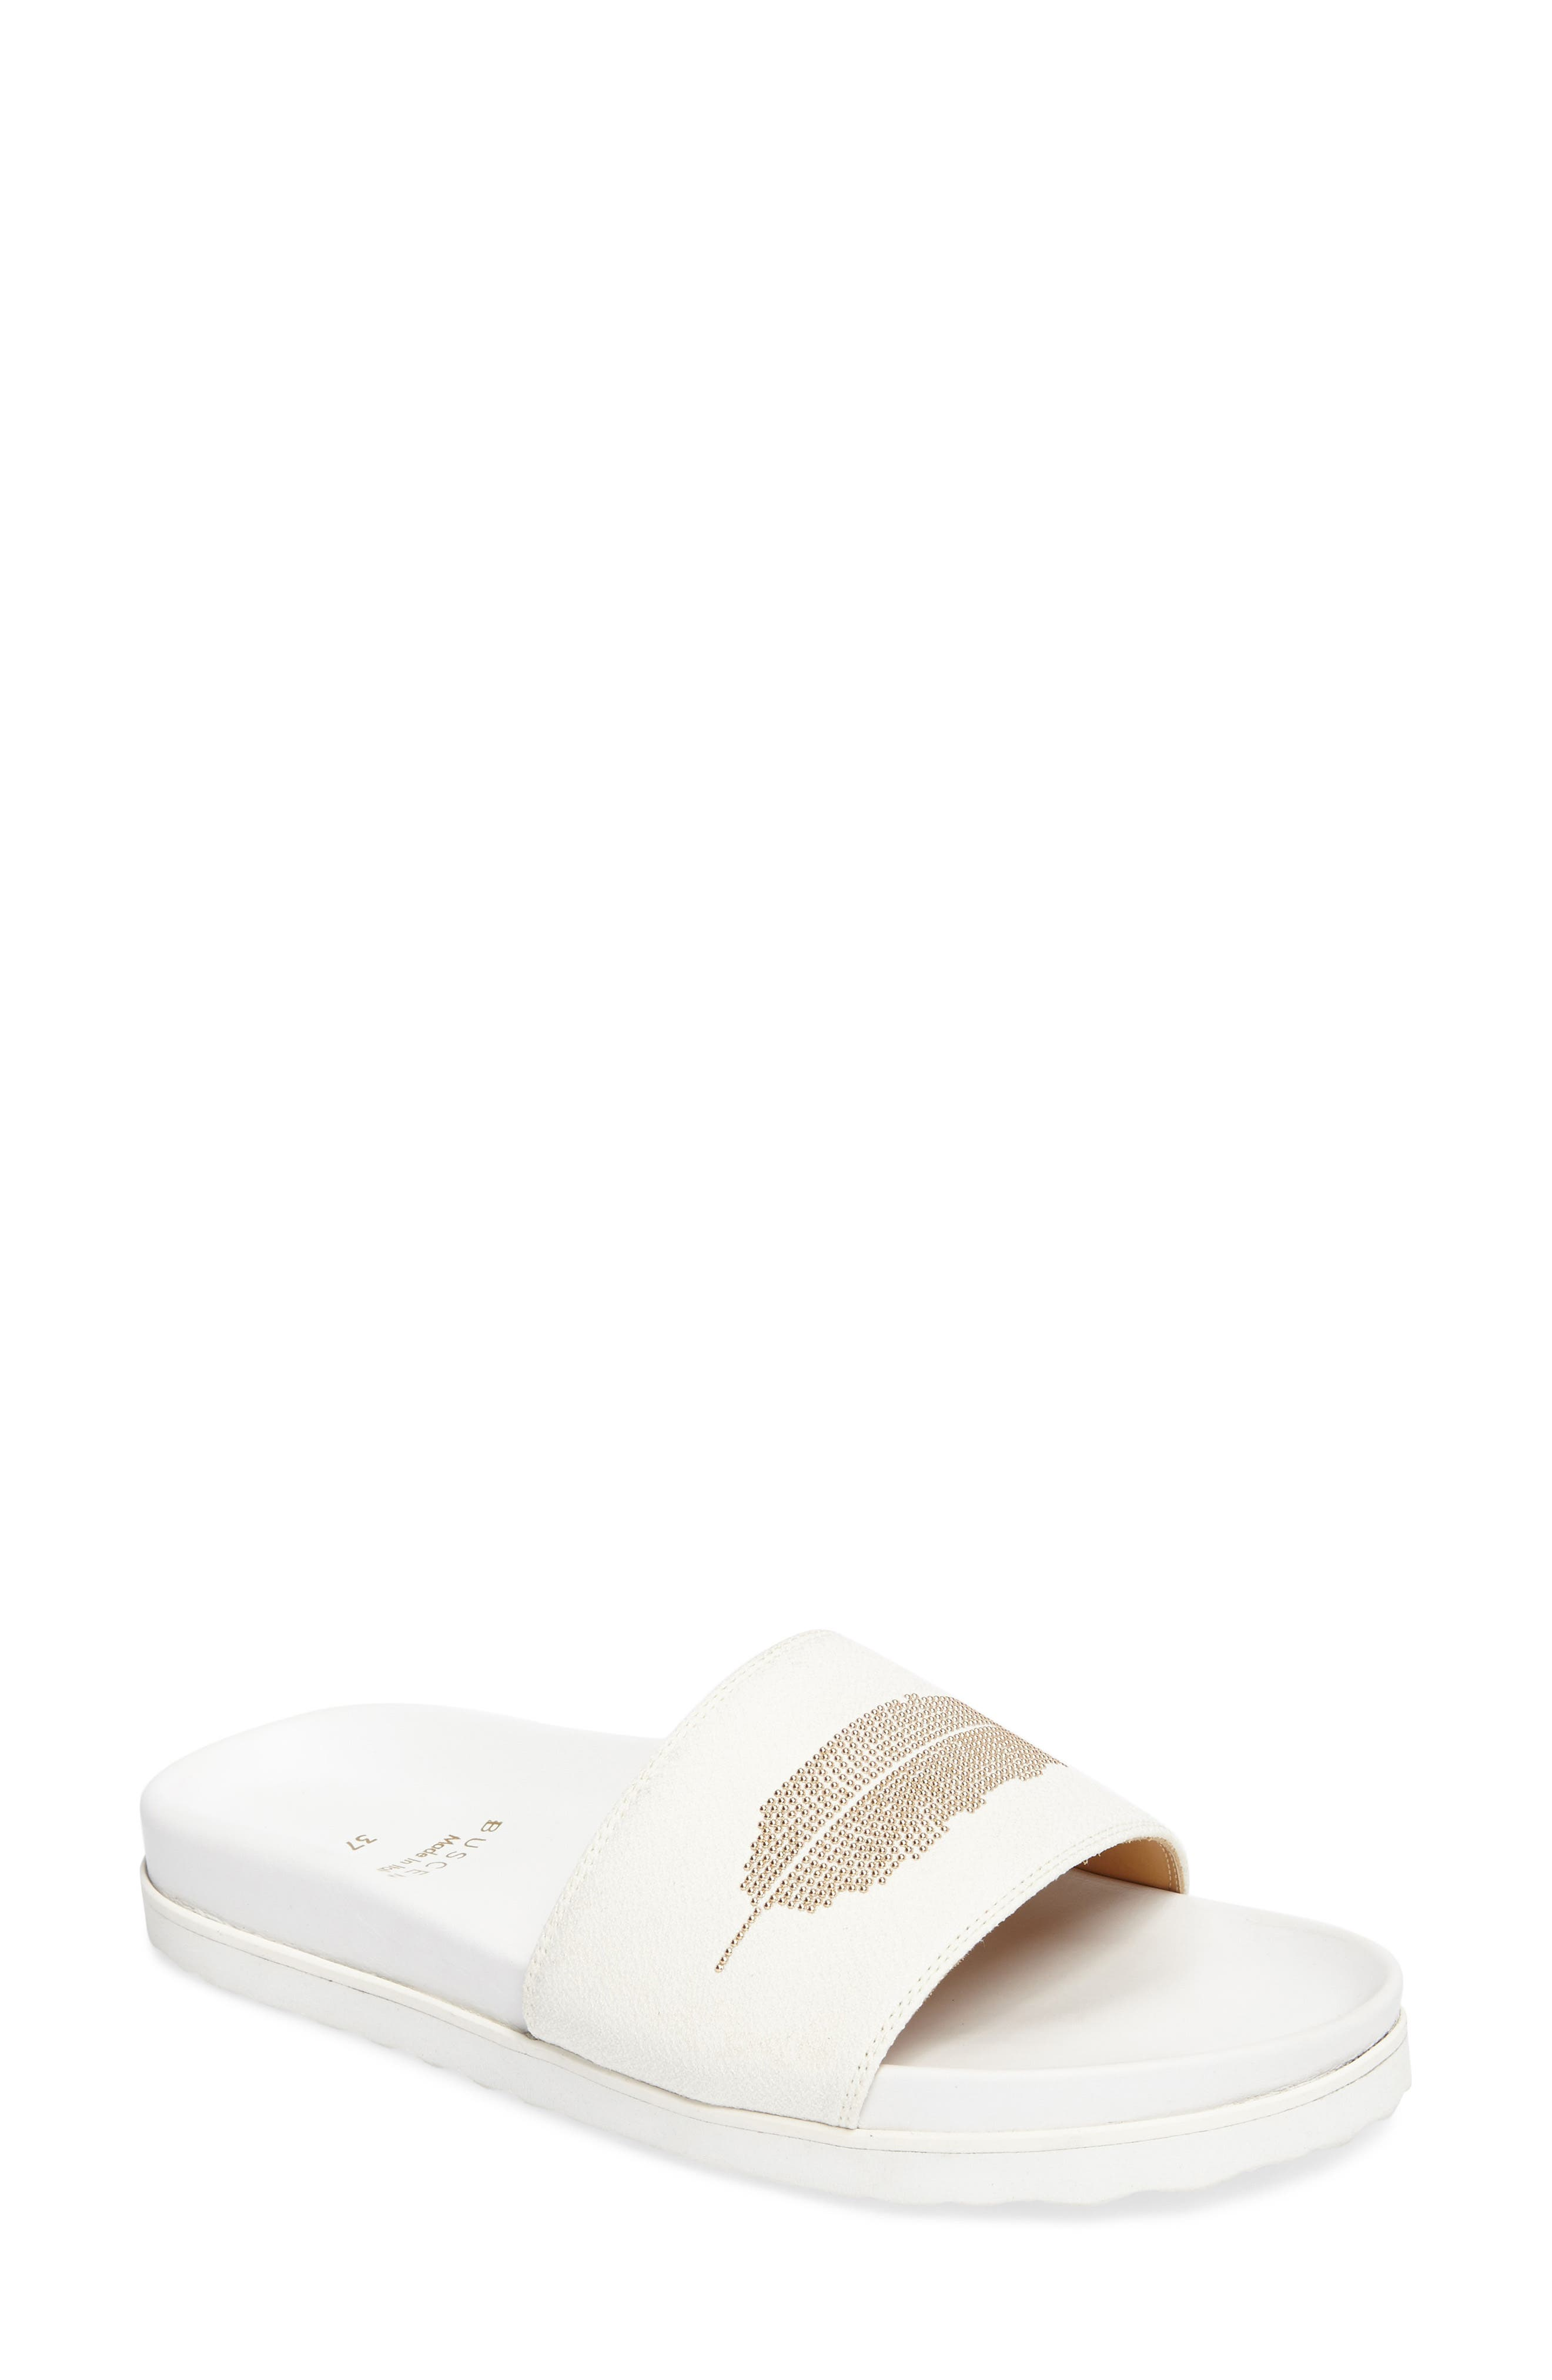 Crepone Feather Slide Sandal,                         Main,                         color,